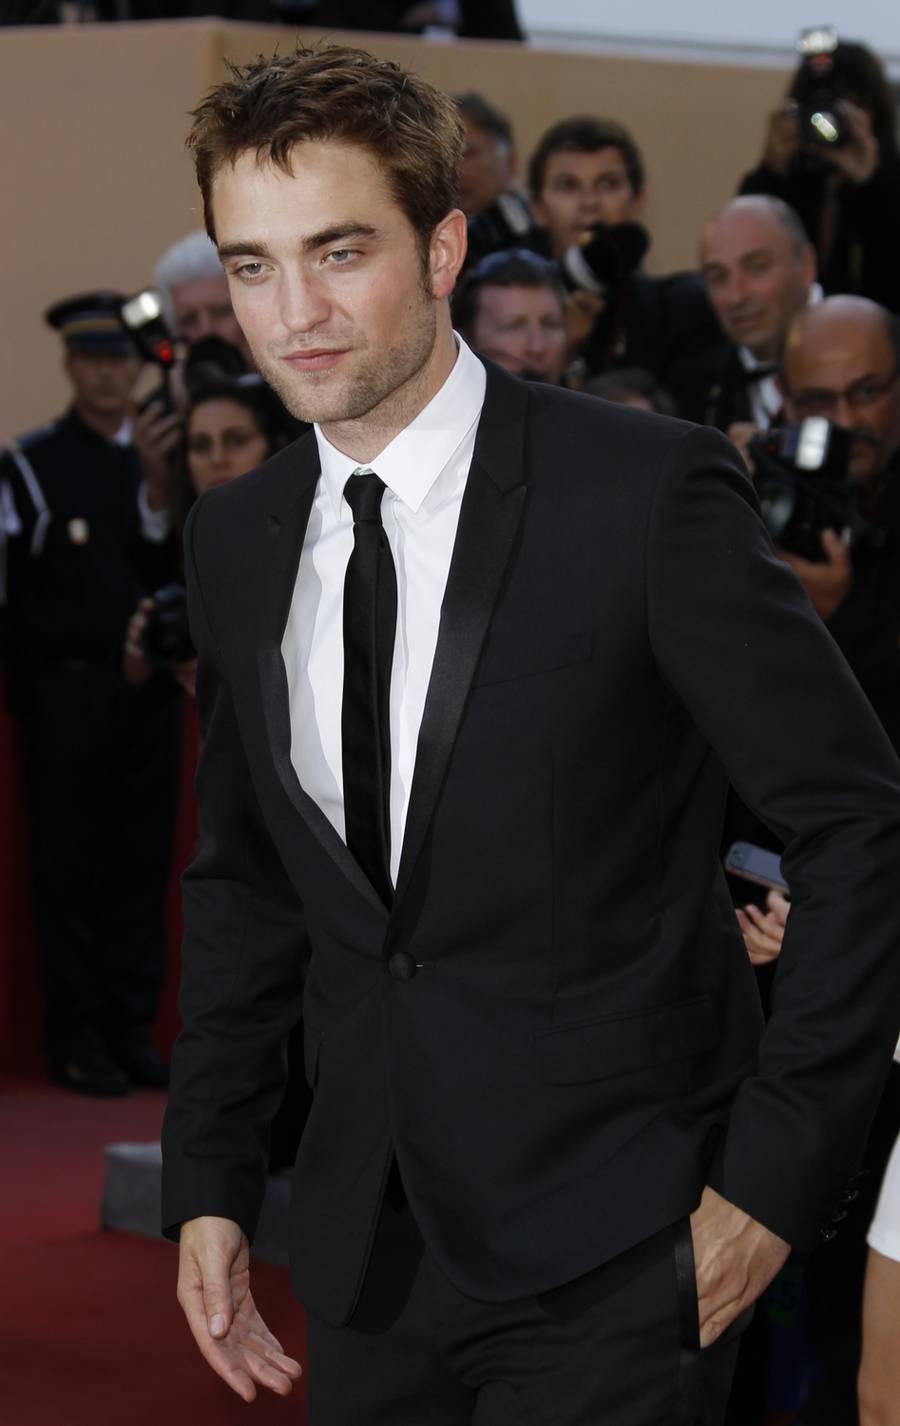 Robert Pattinson skal spille den berømte britiskek helt  Lawrence of Arabia i den kommende film 'Queen of the Desert'.(Foto: AP)